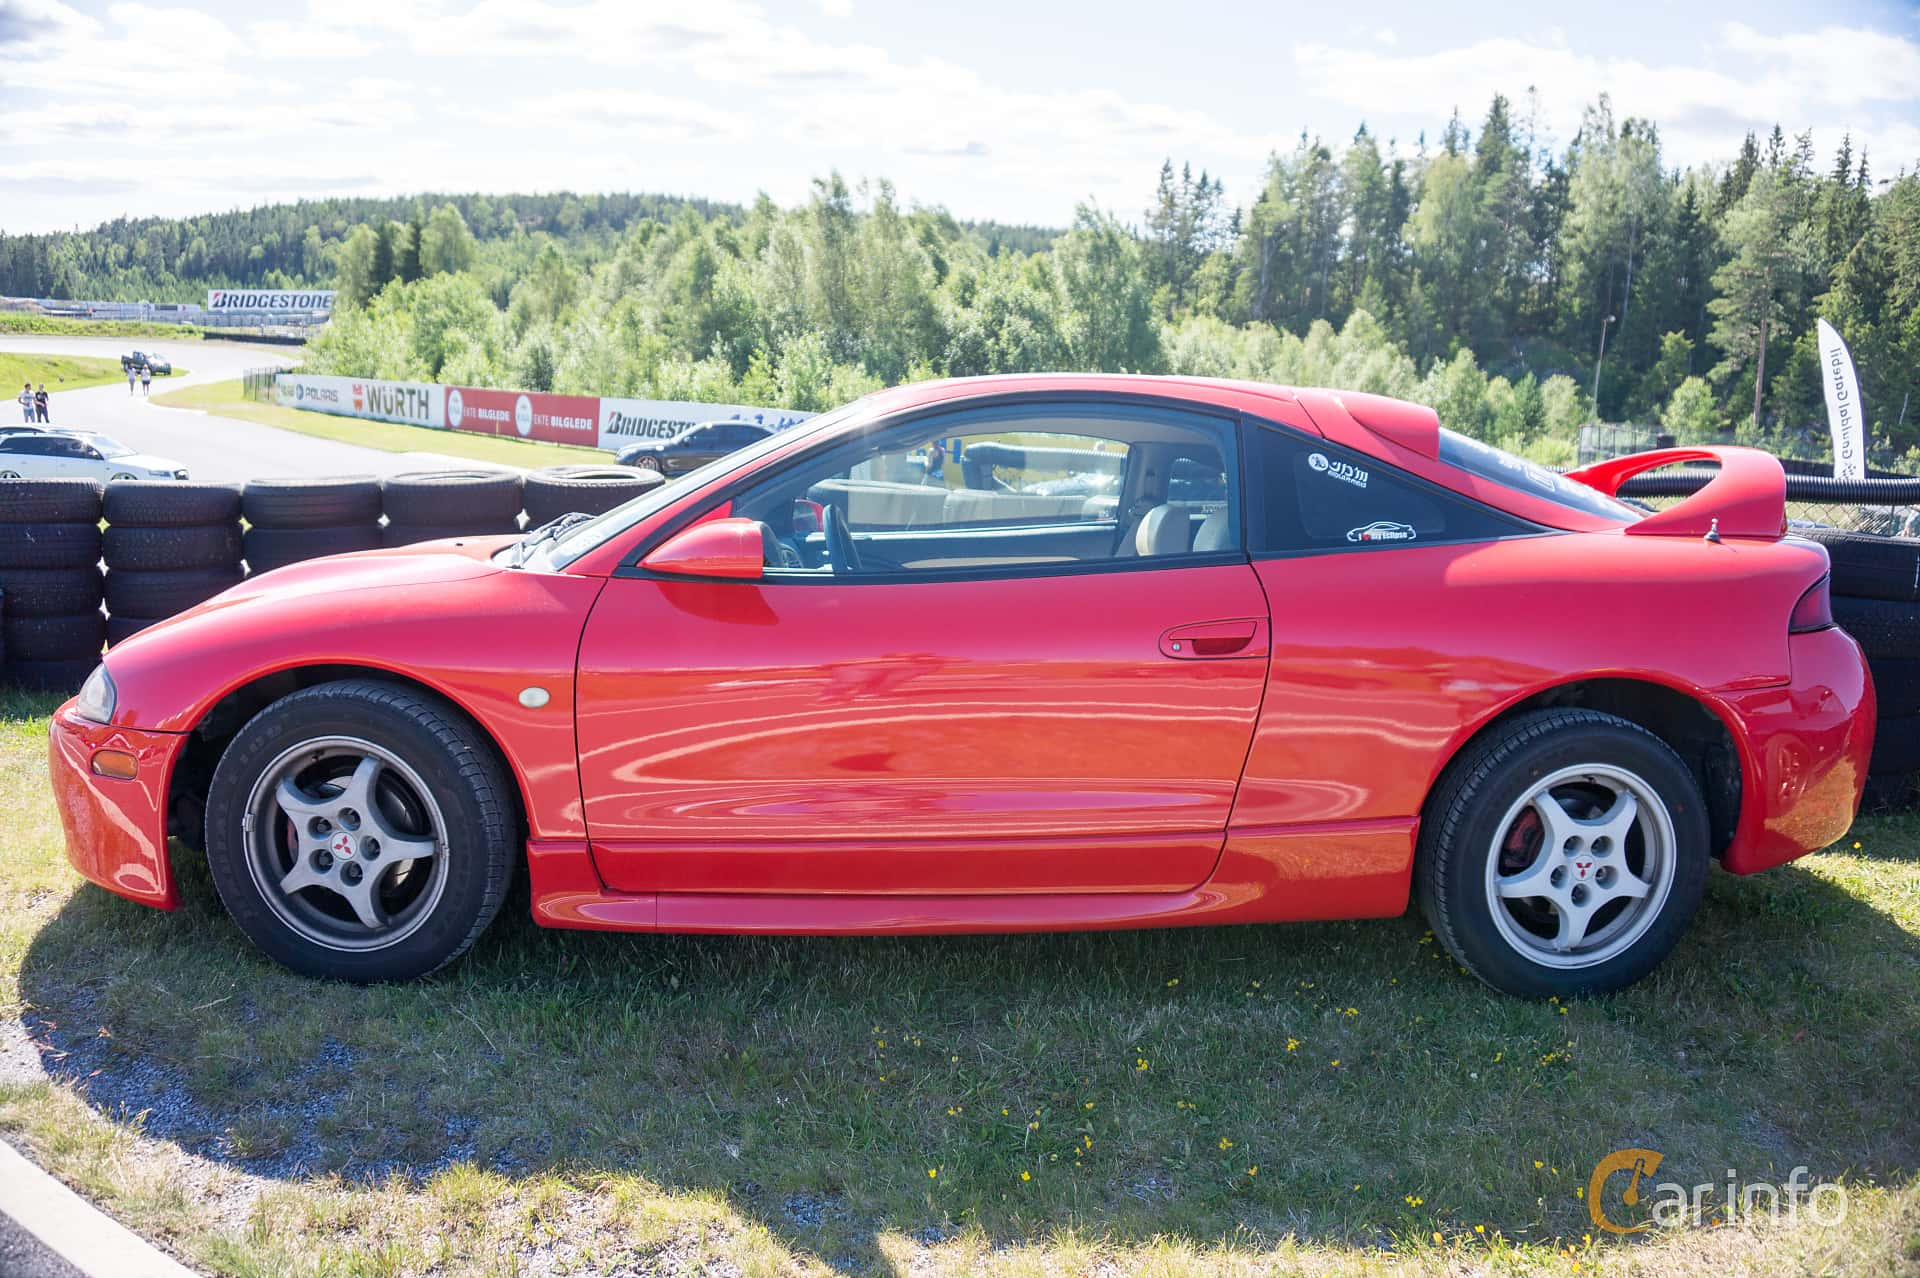 2015 Mitsubishi Eclipse >> 3 Images Of Mitsubishi Eclipse 2 0 Manual 214hp 1998 By